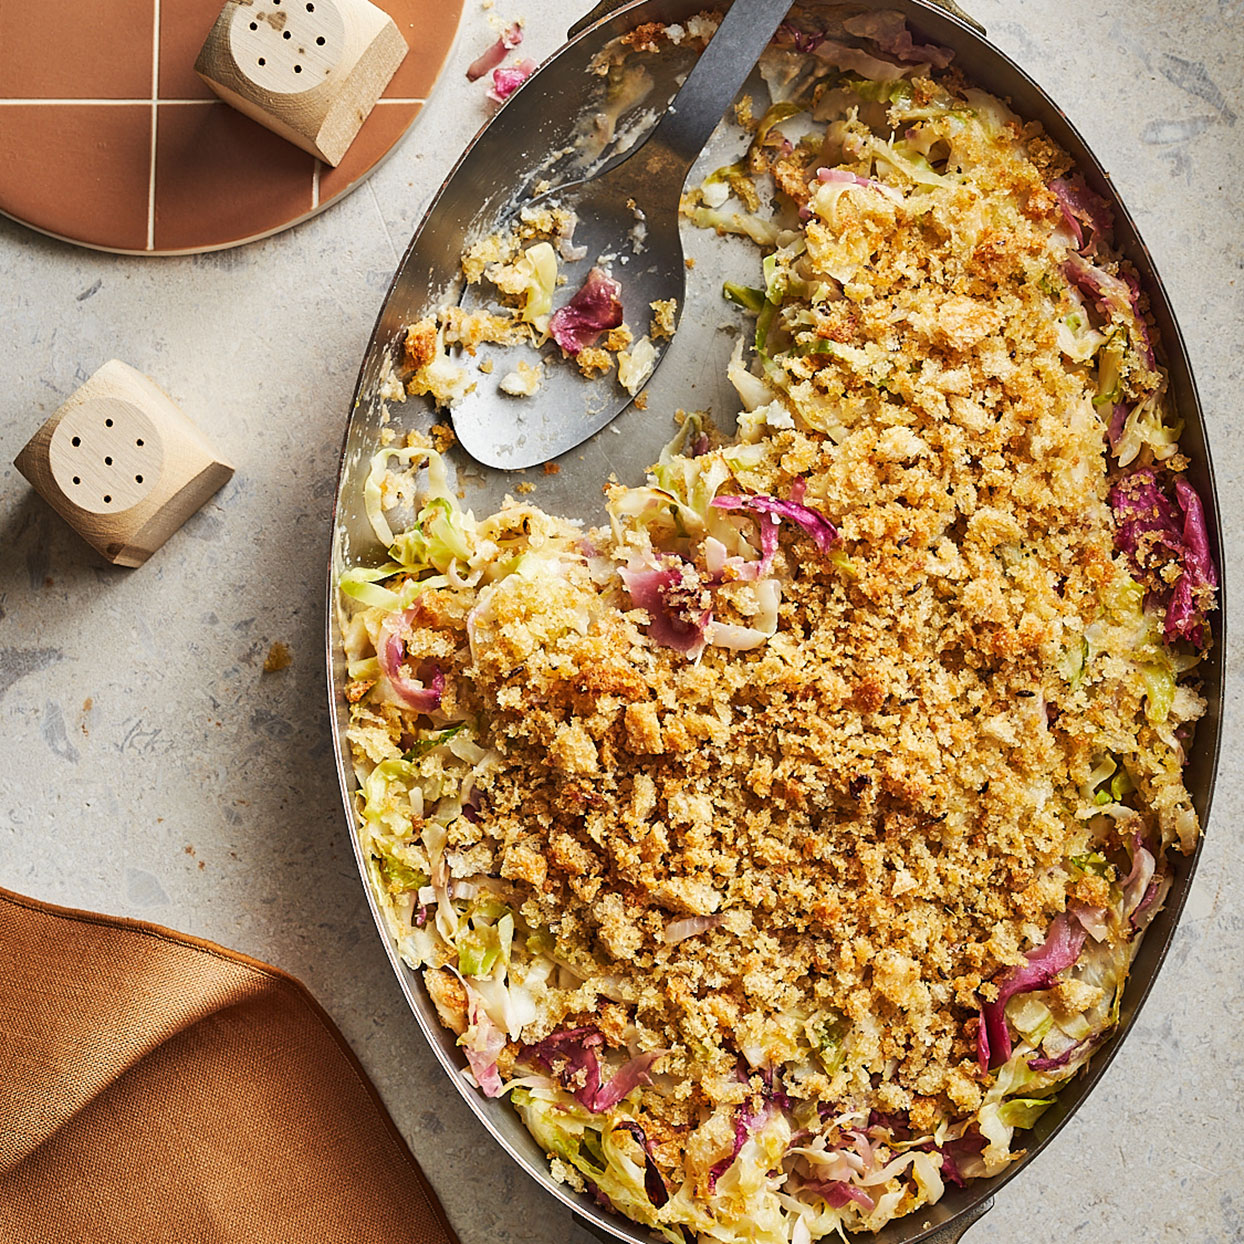 Creamed Cabbage & Sauerkraut with Rye Breadcrumbs